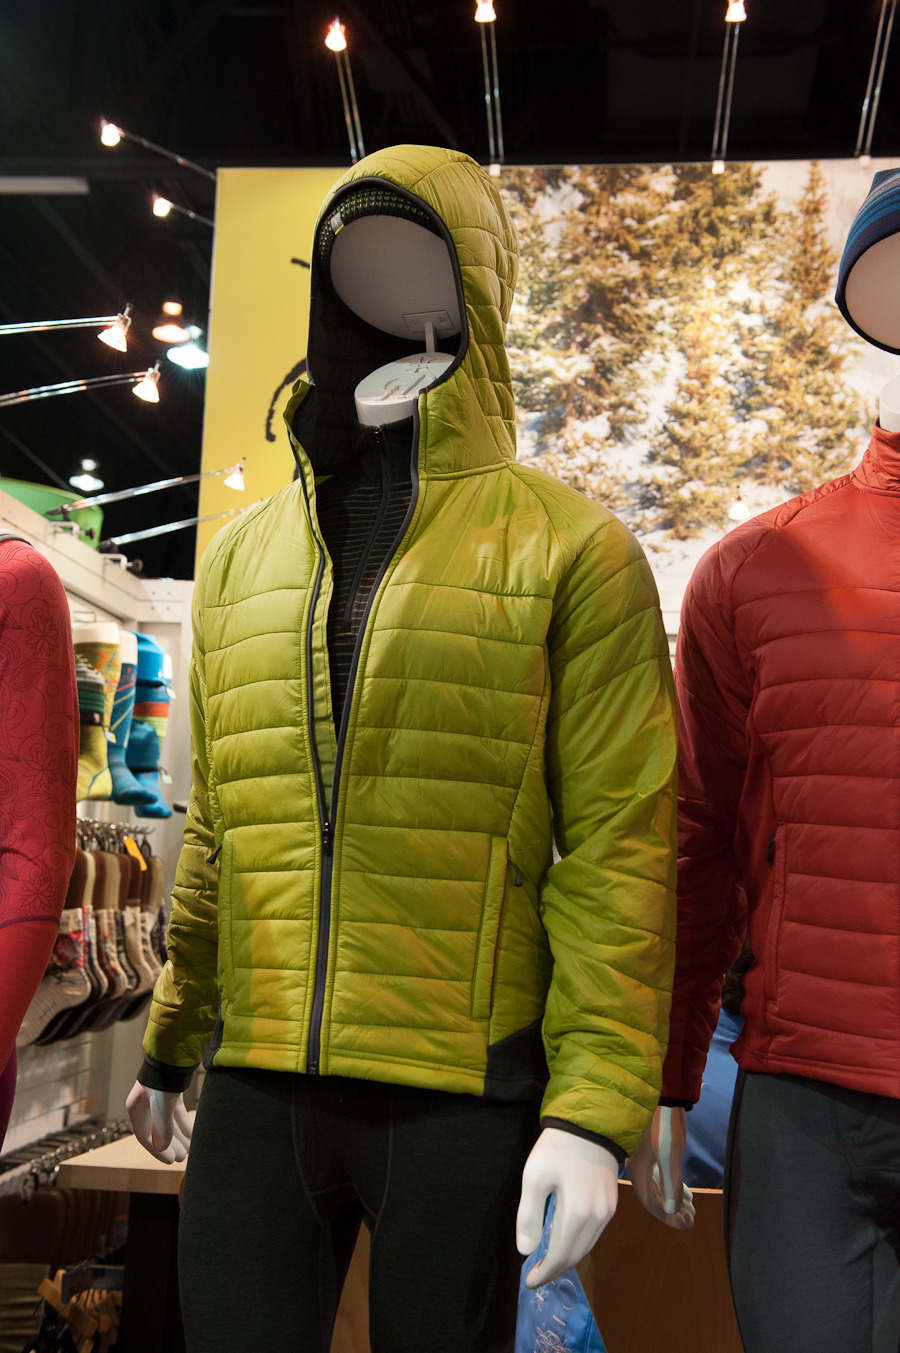 The Smartwool Smartloft Down Jacket has a built in hoody for added protection around the head. 